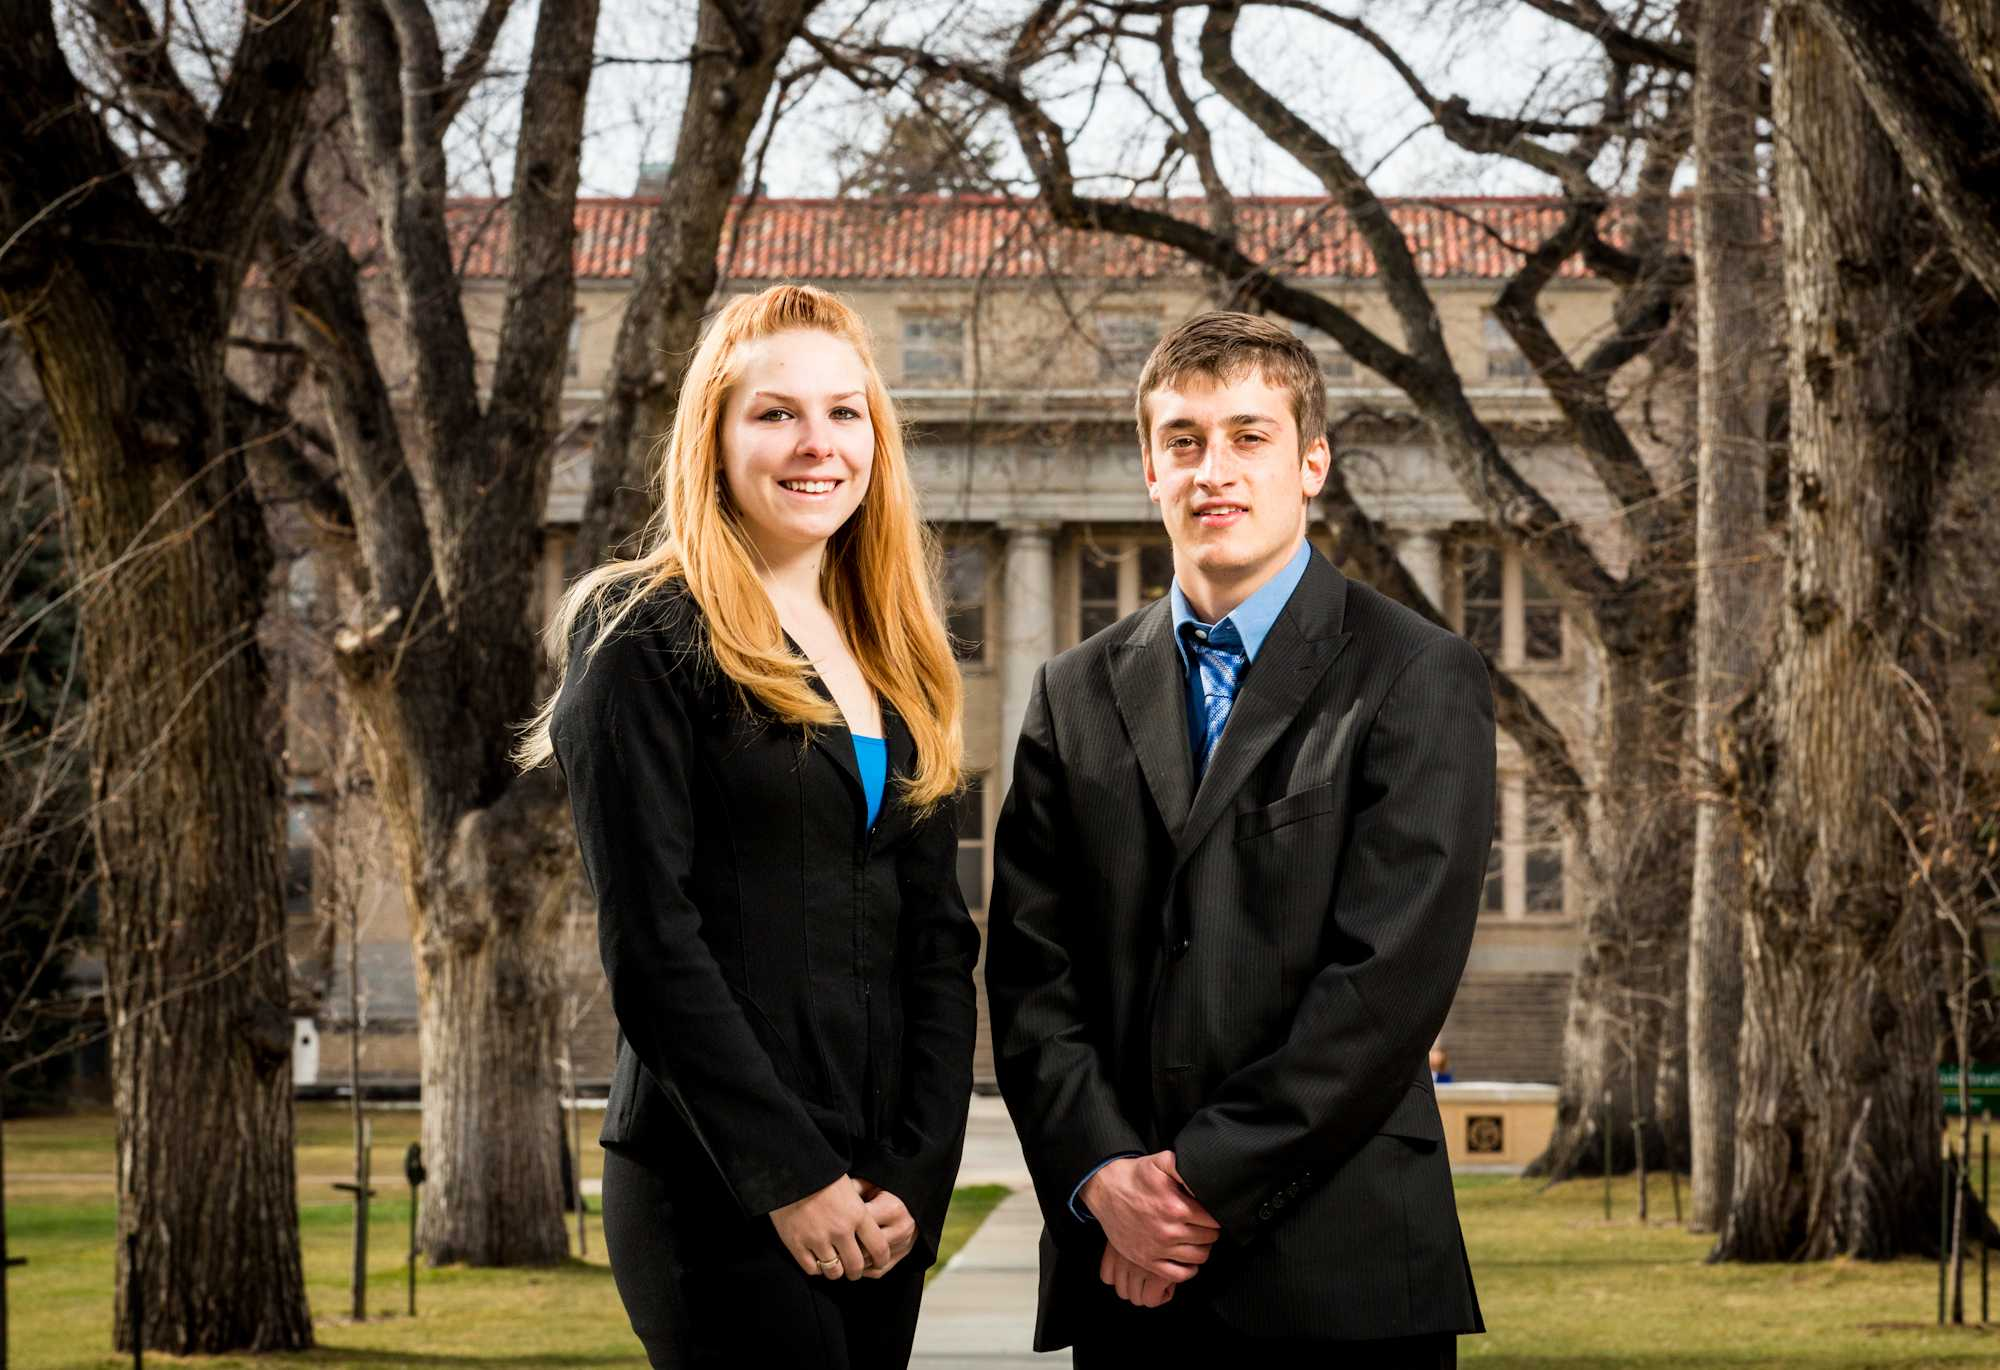 Wendy Bowling, left, and John Stockley. ASCSU President and Vice President candidate.